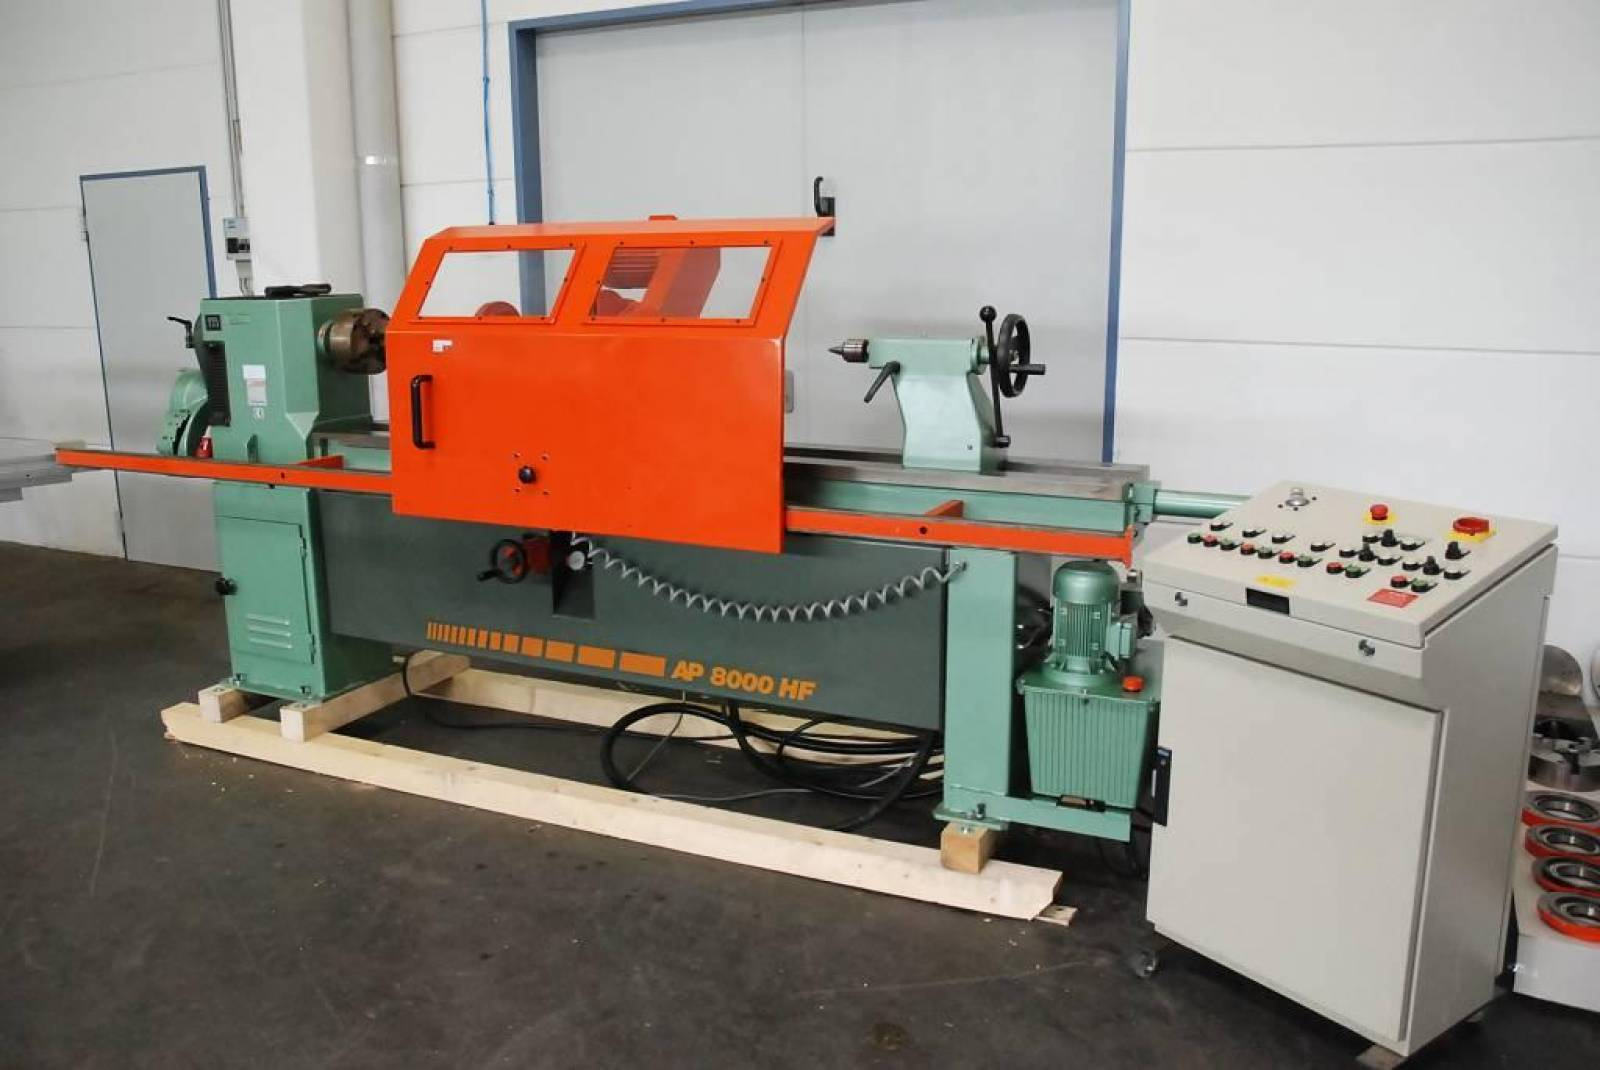 Automatic Wood Turning Lathe Hapfo Ap 8000 Hf Buy Second Hand